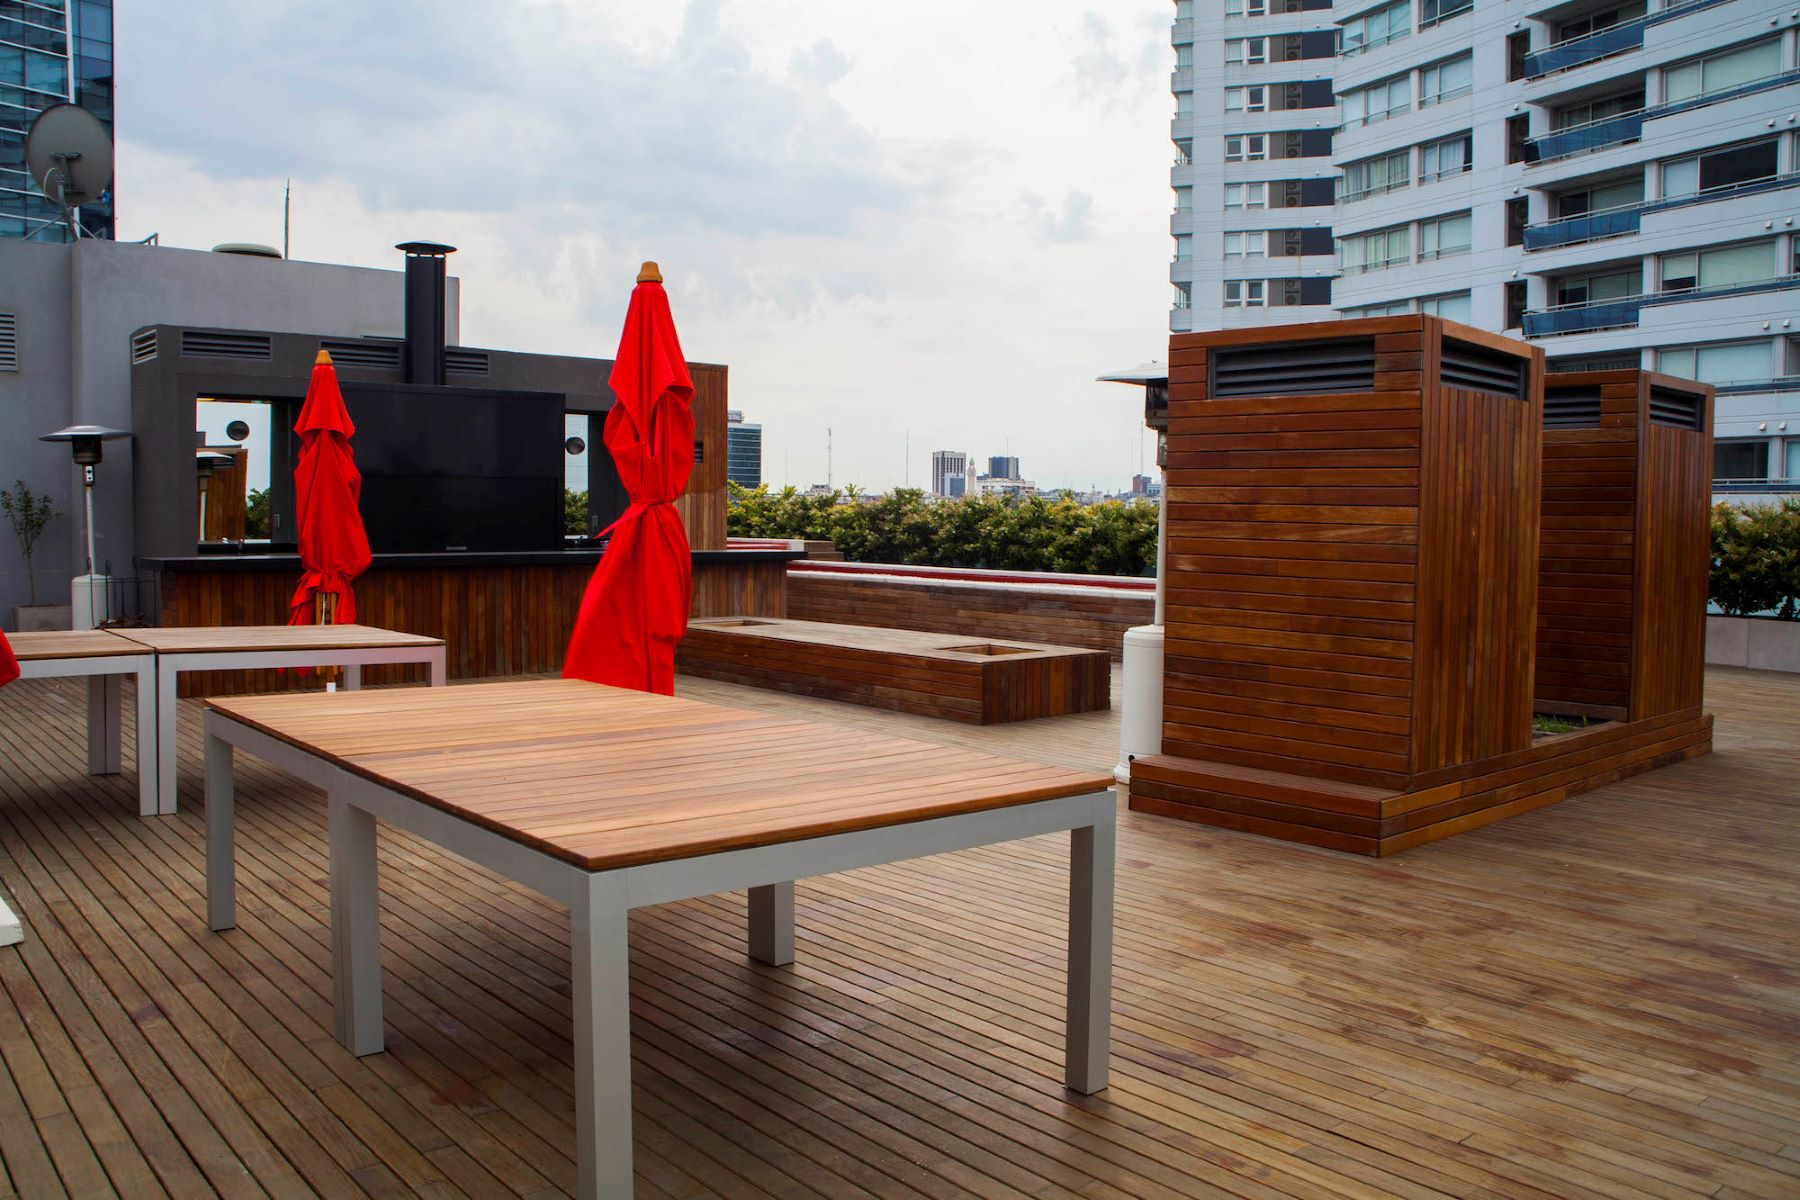 Additional photo for property listing at Unique Penthouse in Puerto Madero Lola Mora 457 Other Argentina, 1107 Argentina